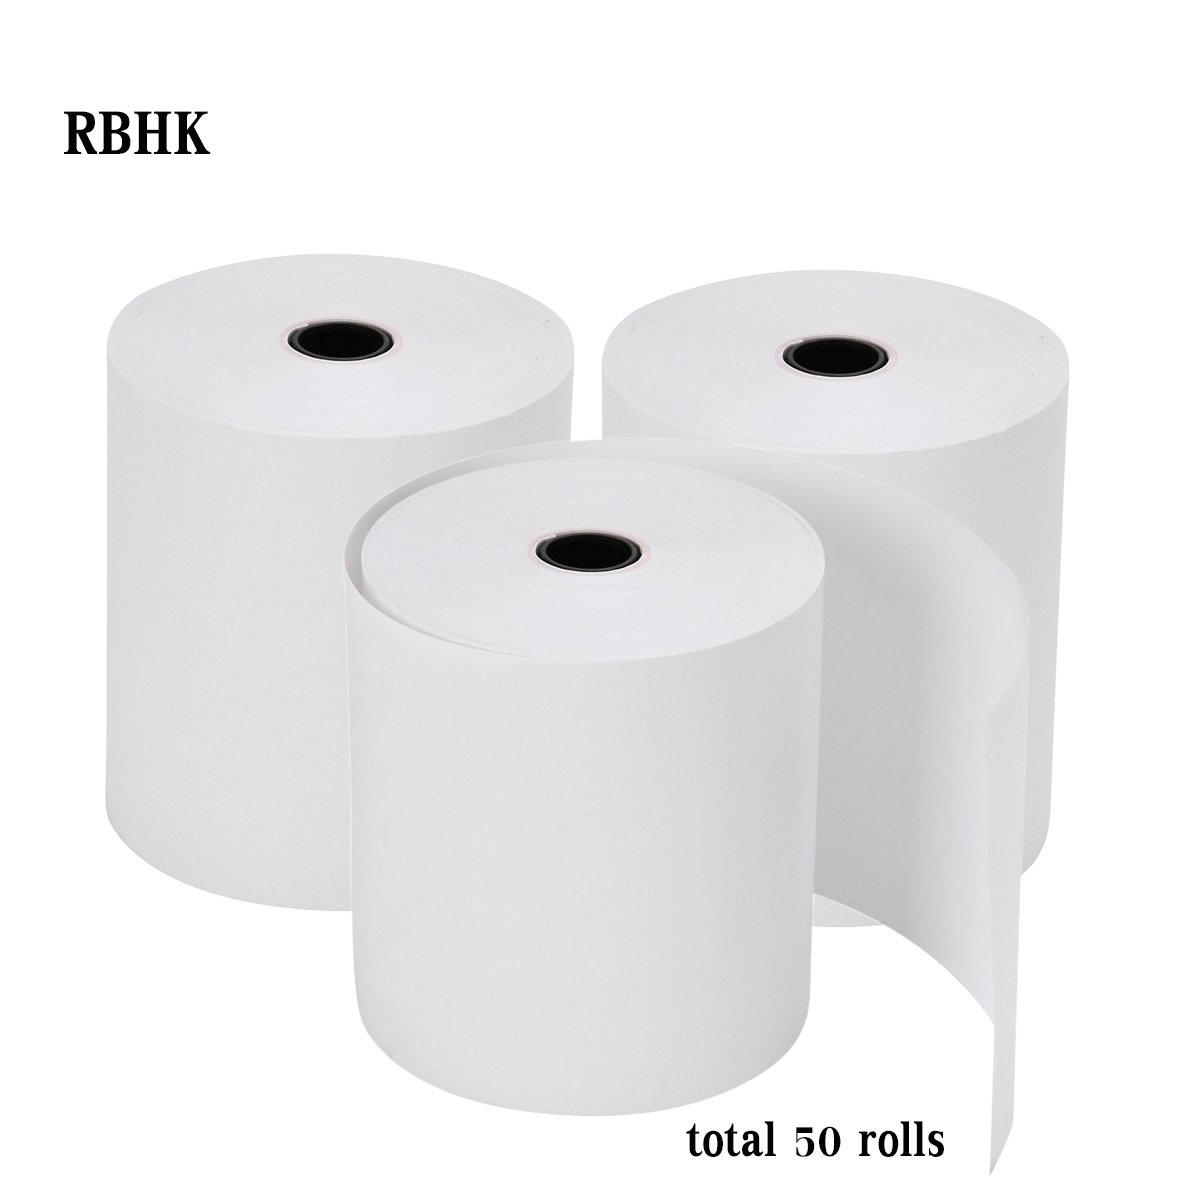 RBHK 2 1/4'' x 50' Thermal Receipt Paper, Cash Register POS Paper Roll, 50 Rolls Total by RBHK (Image #2)